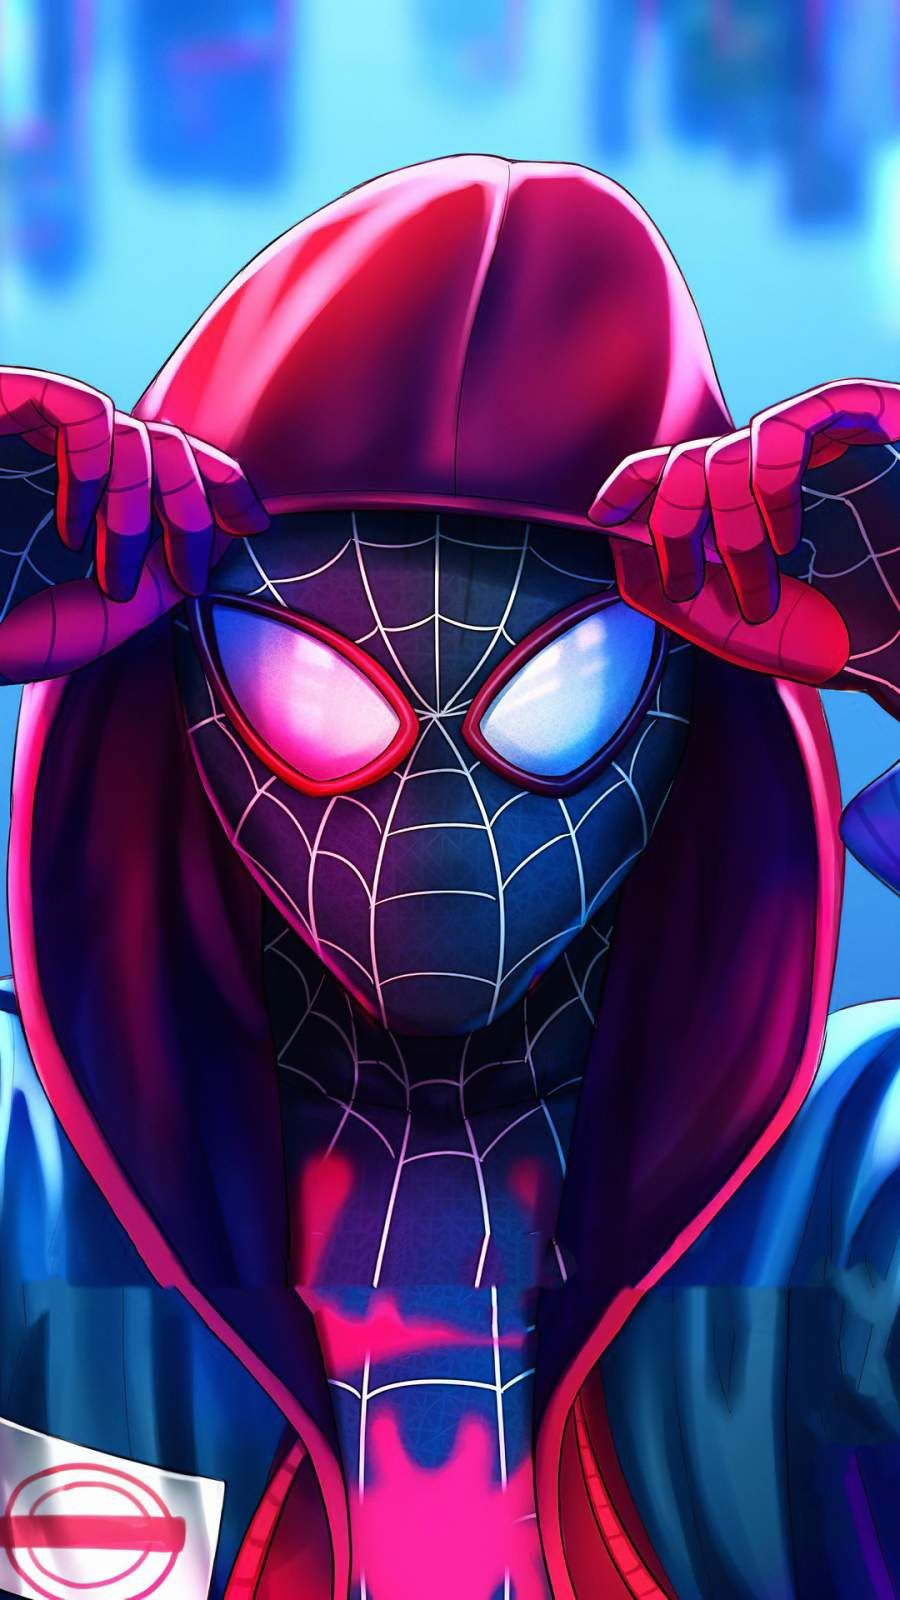 Download Miles Spiderman Hoodie Mobile Wallpaper For Your Android Iphone Wallpaper Or Ipad Tablet Wa In 2020 Spiderman Artwork Spiderman Art Marvel Superhero Posters